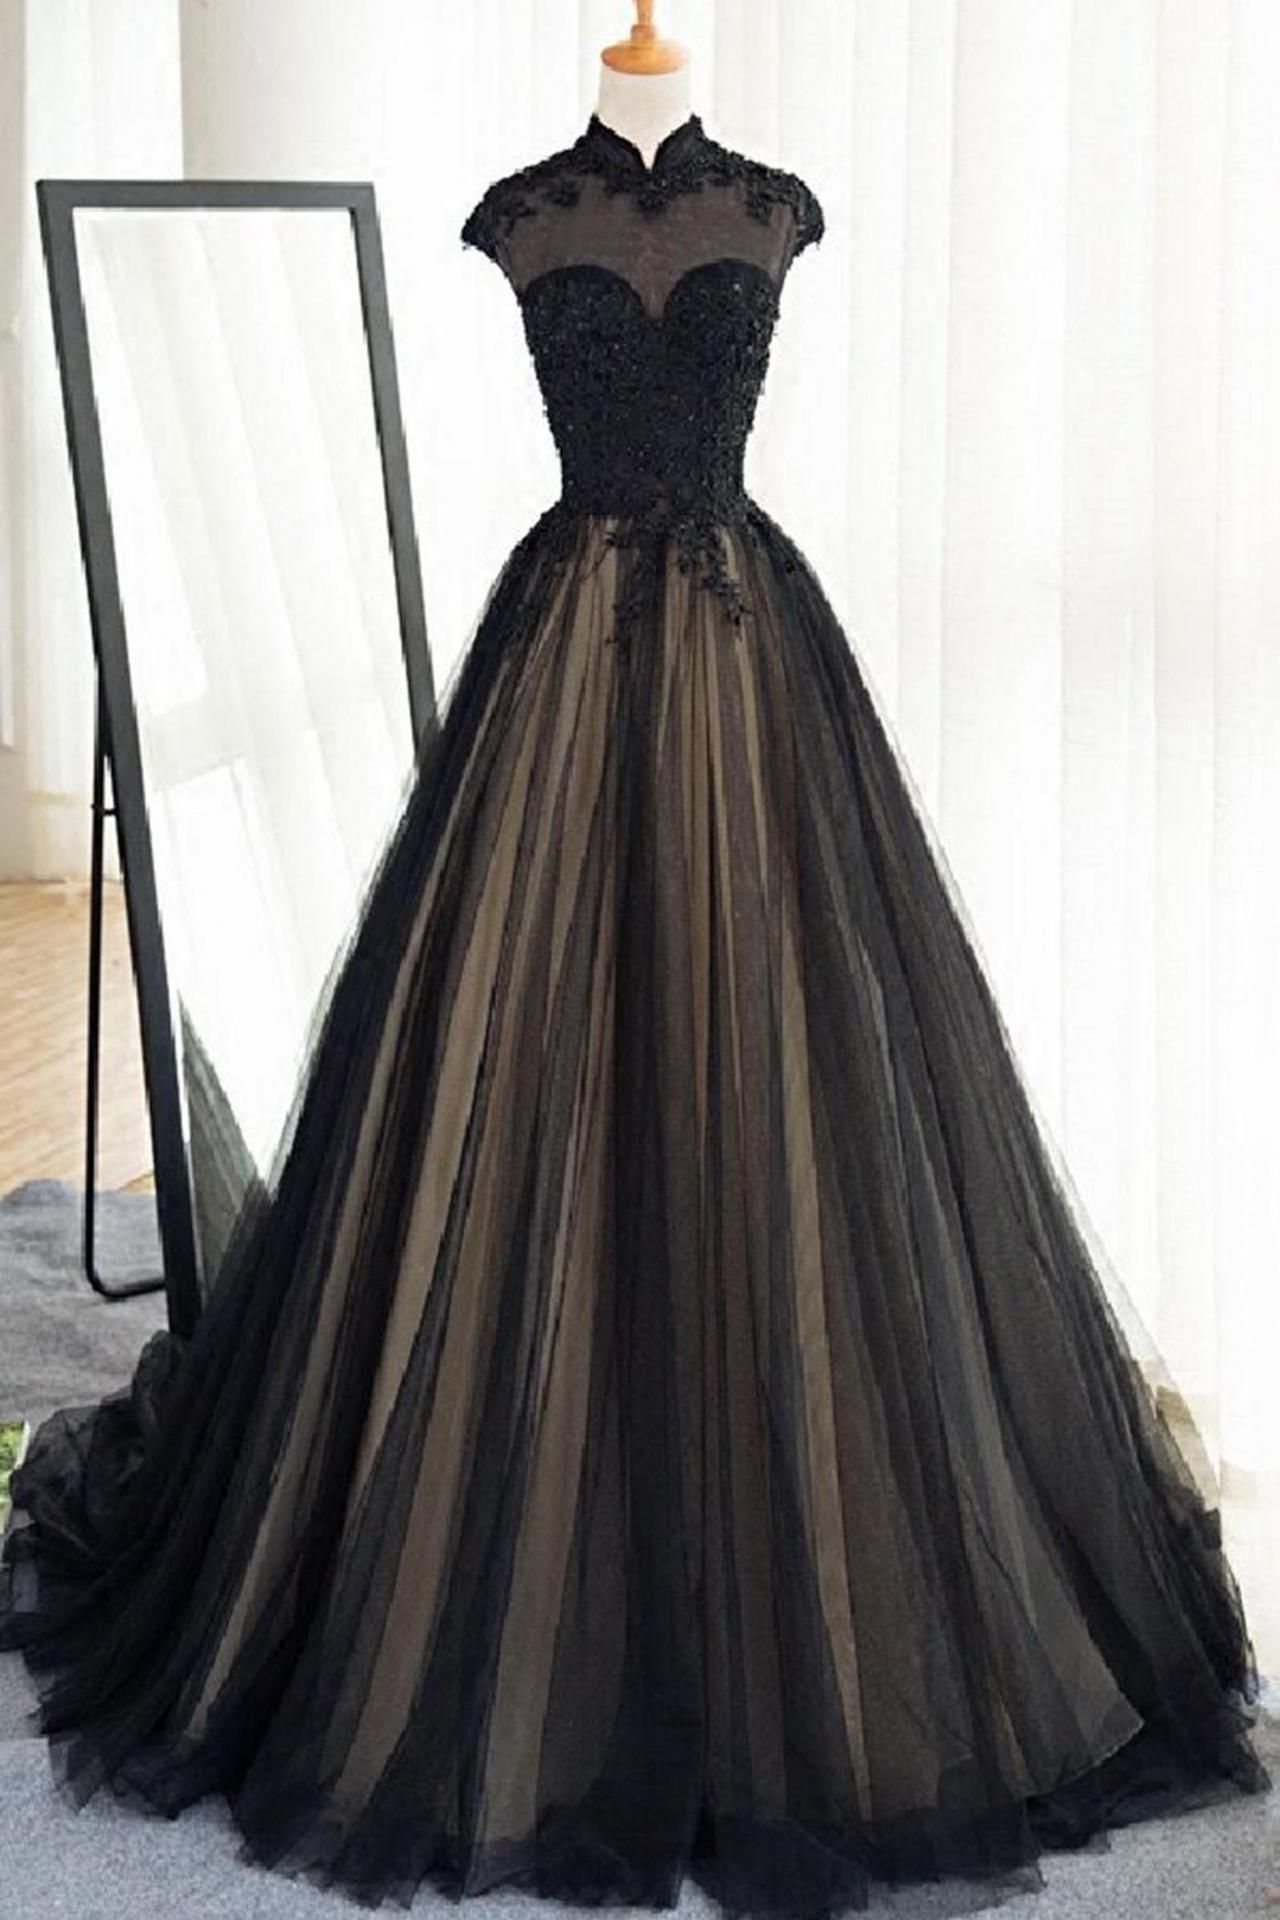 Aline prom dresses black prom dresses high neck prom dresses